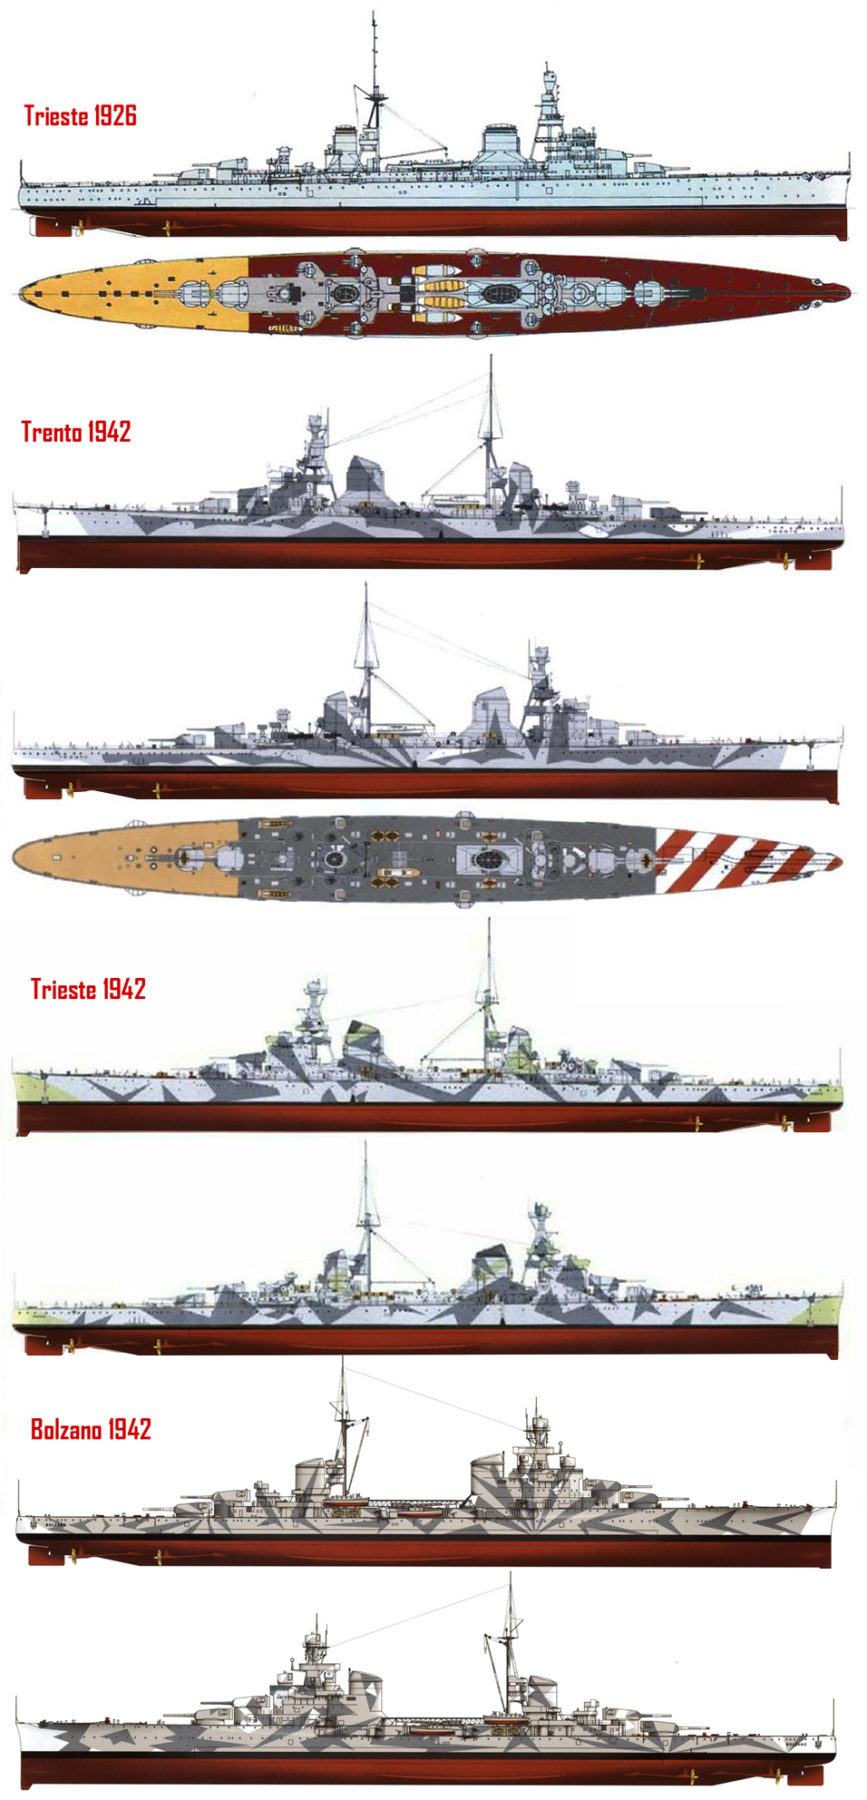 Camouflage Liveries of the Trento, Trieste and Bolzano from model kits